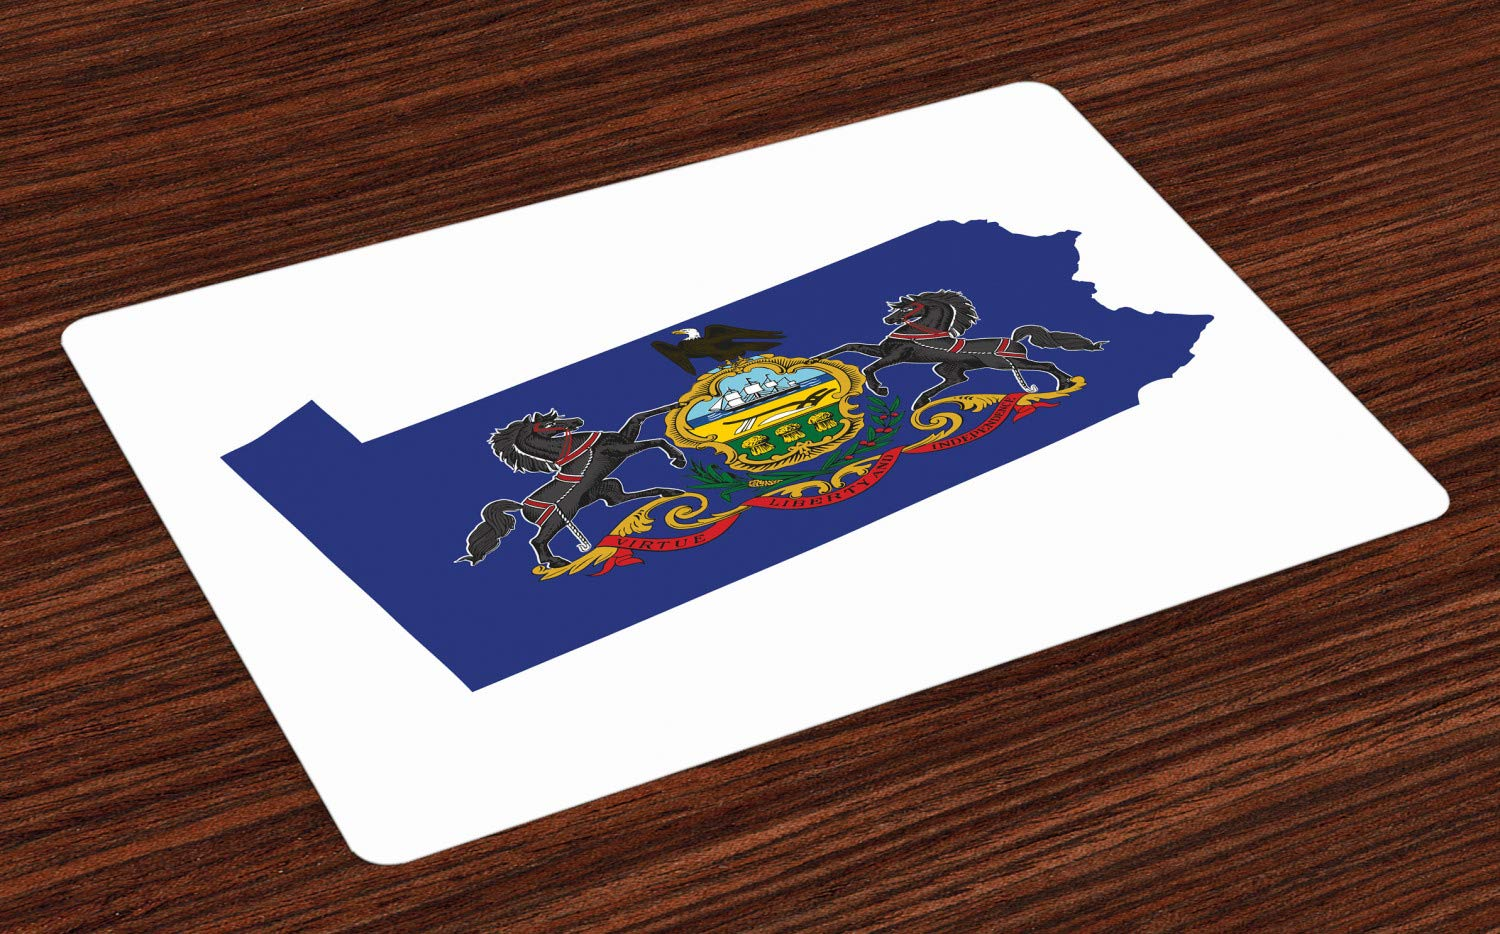 Lunarable Pennsylvania Place Mats Set of 4, Keystone State Flag and Map Horses American Eagle Coat of Arms, Washable Fabric Placemats for Dining Room Kitchen Table Decor, Cobalt Blue Multicolor